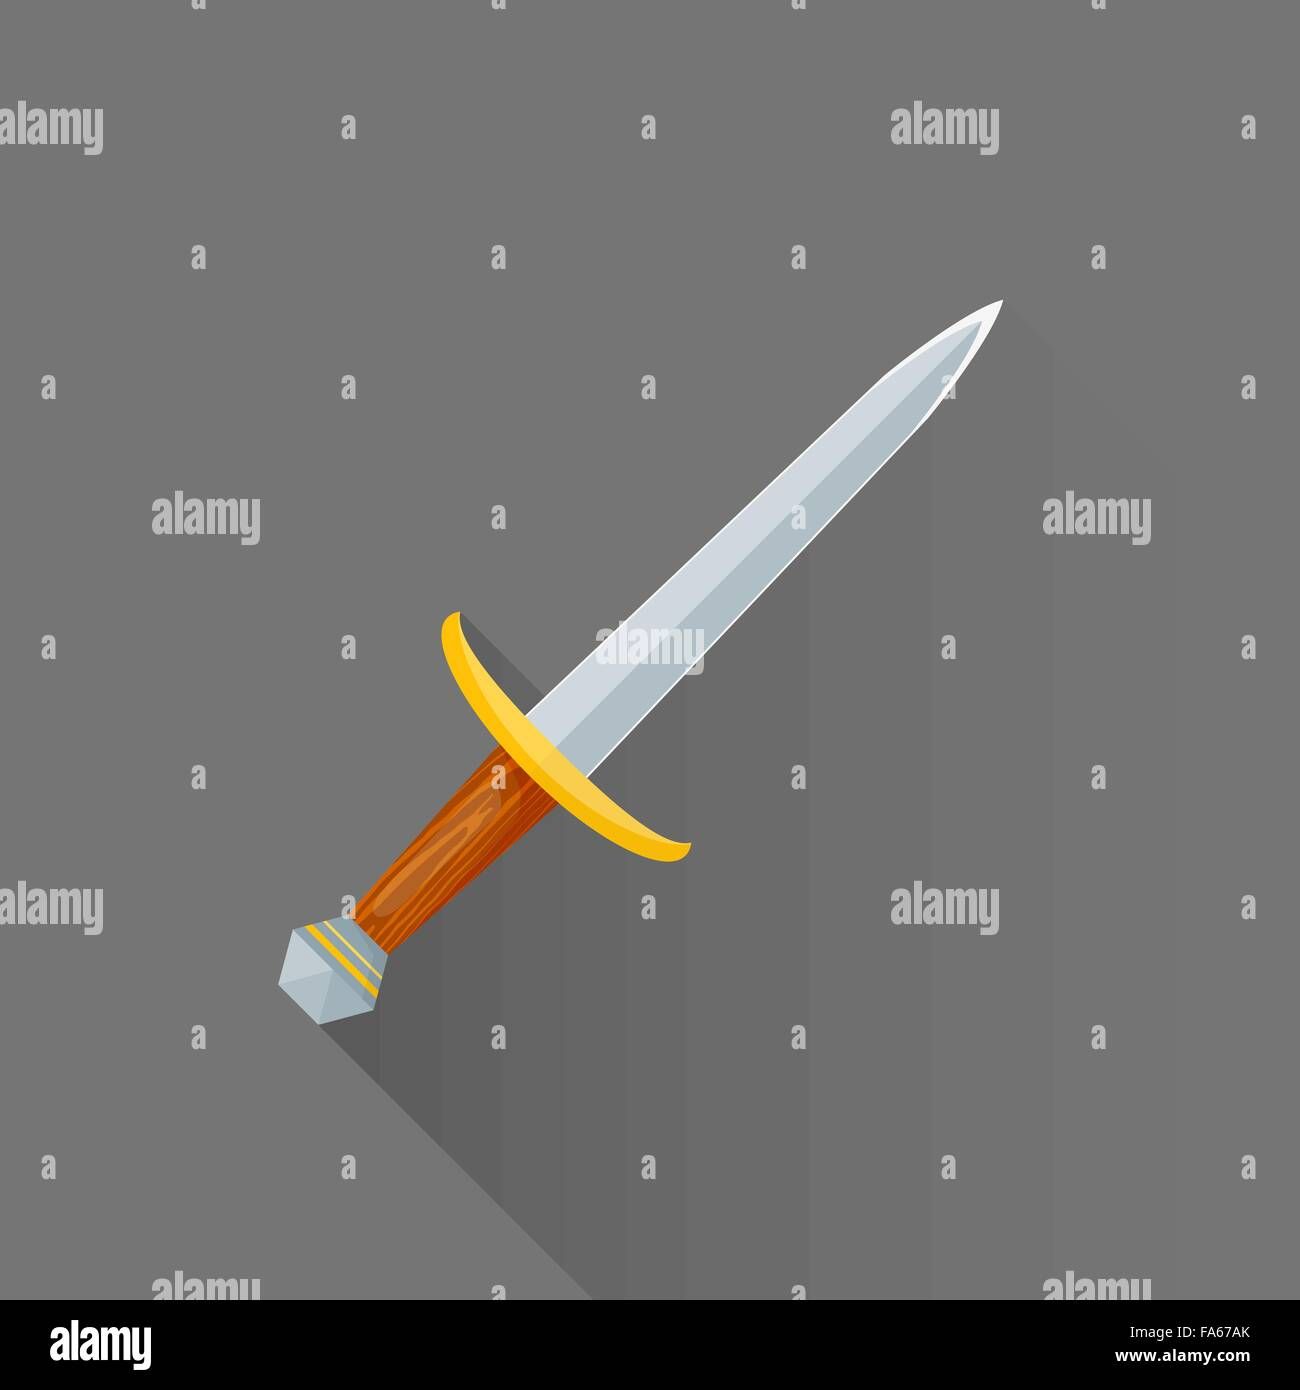 vector colored flat design metal sharp blade battle dagger wood handle isolated illustration gray background long - Stock Vector